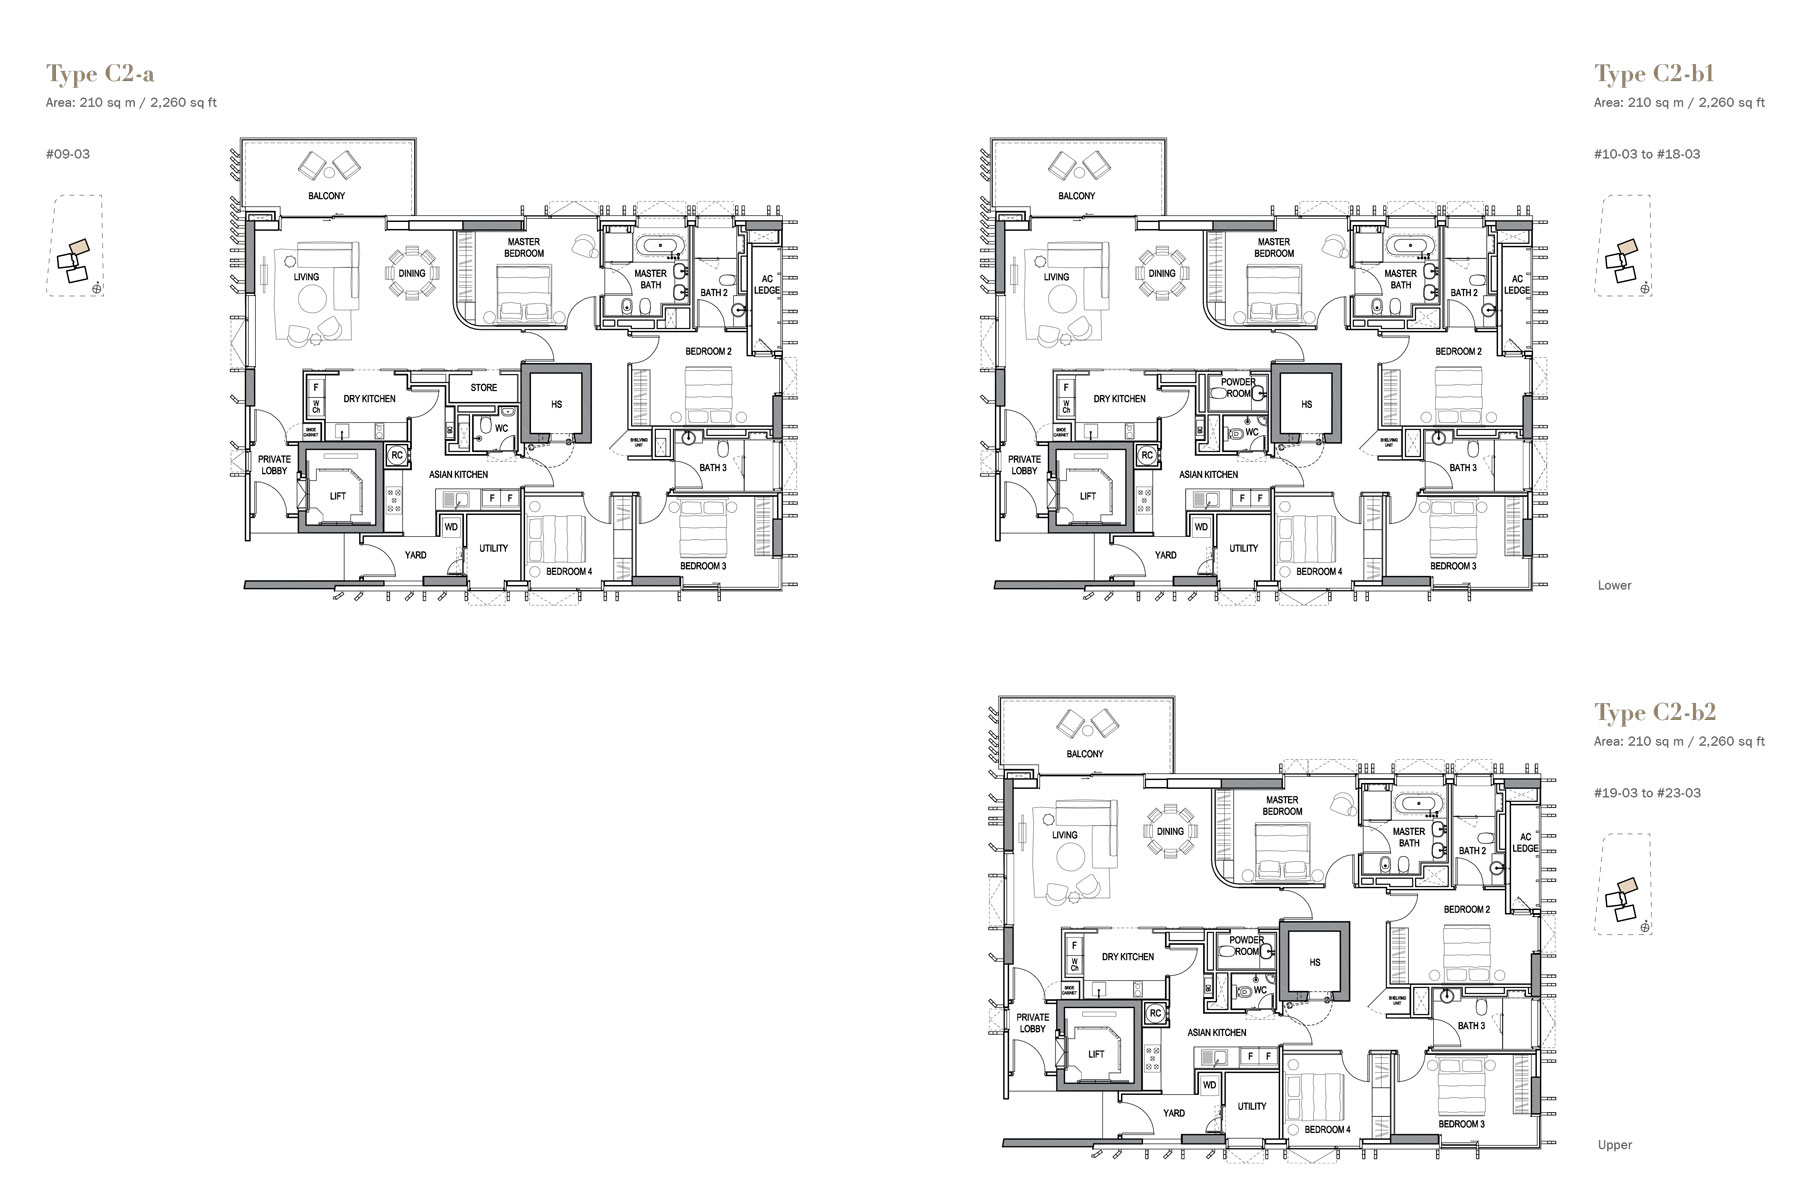 3 orchard by the Park 34 bedroom floorplans by Jessicasiow.com